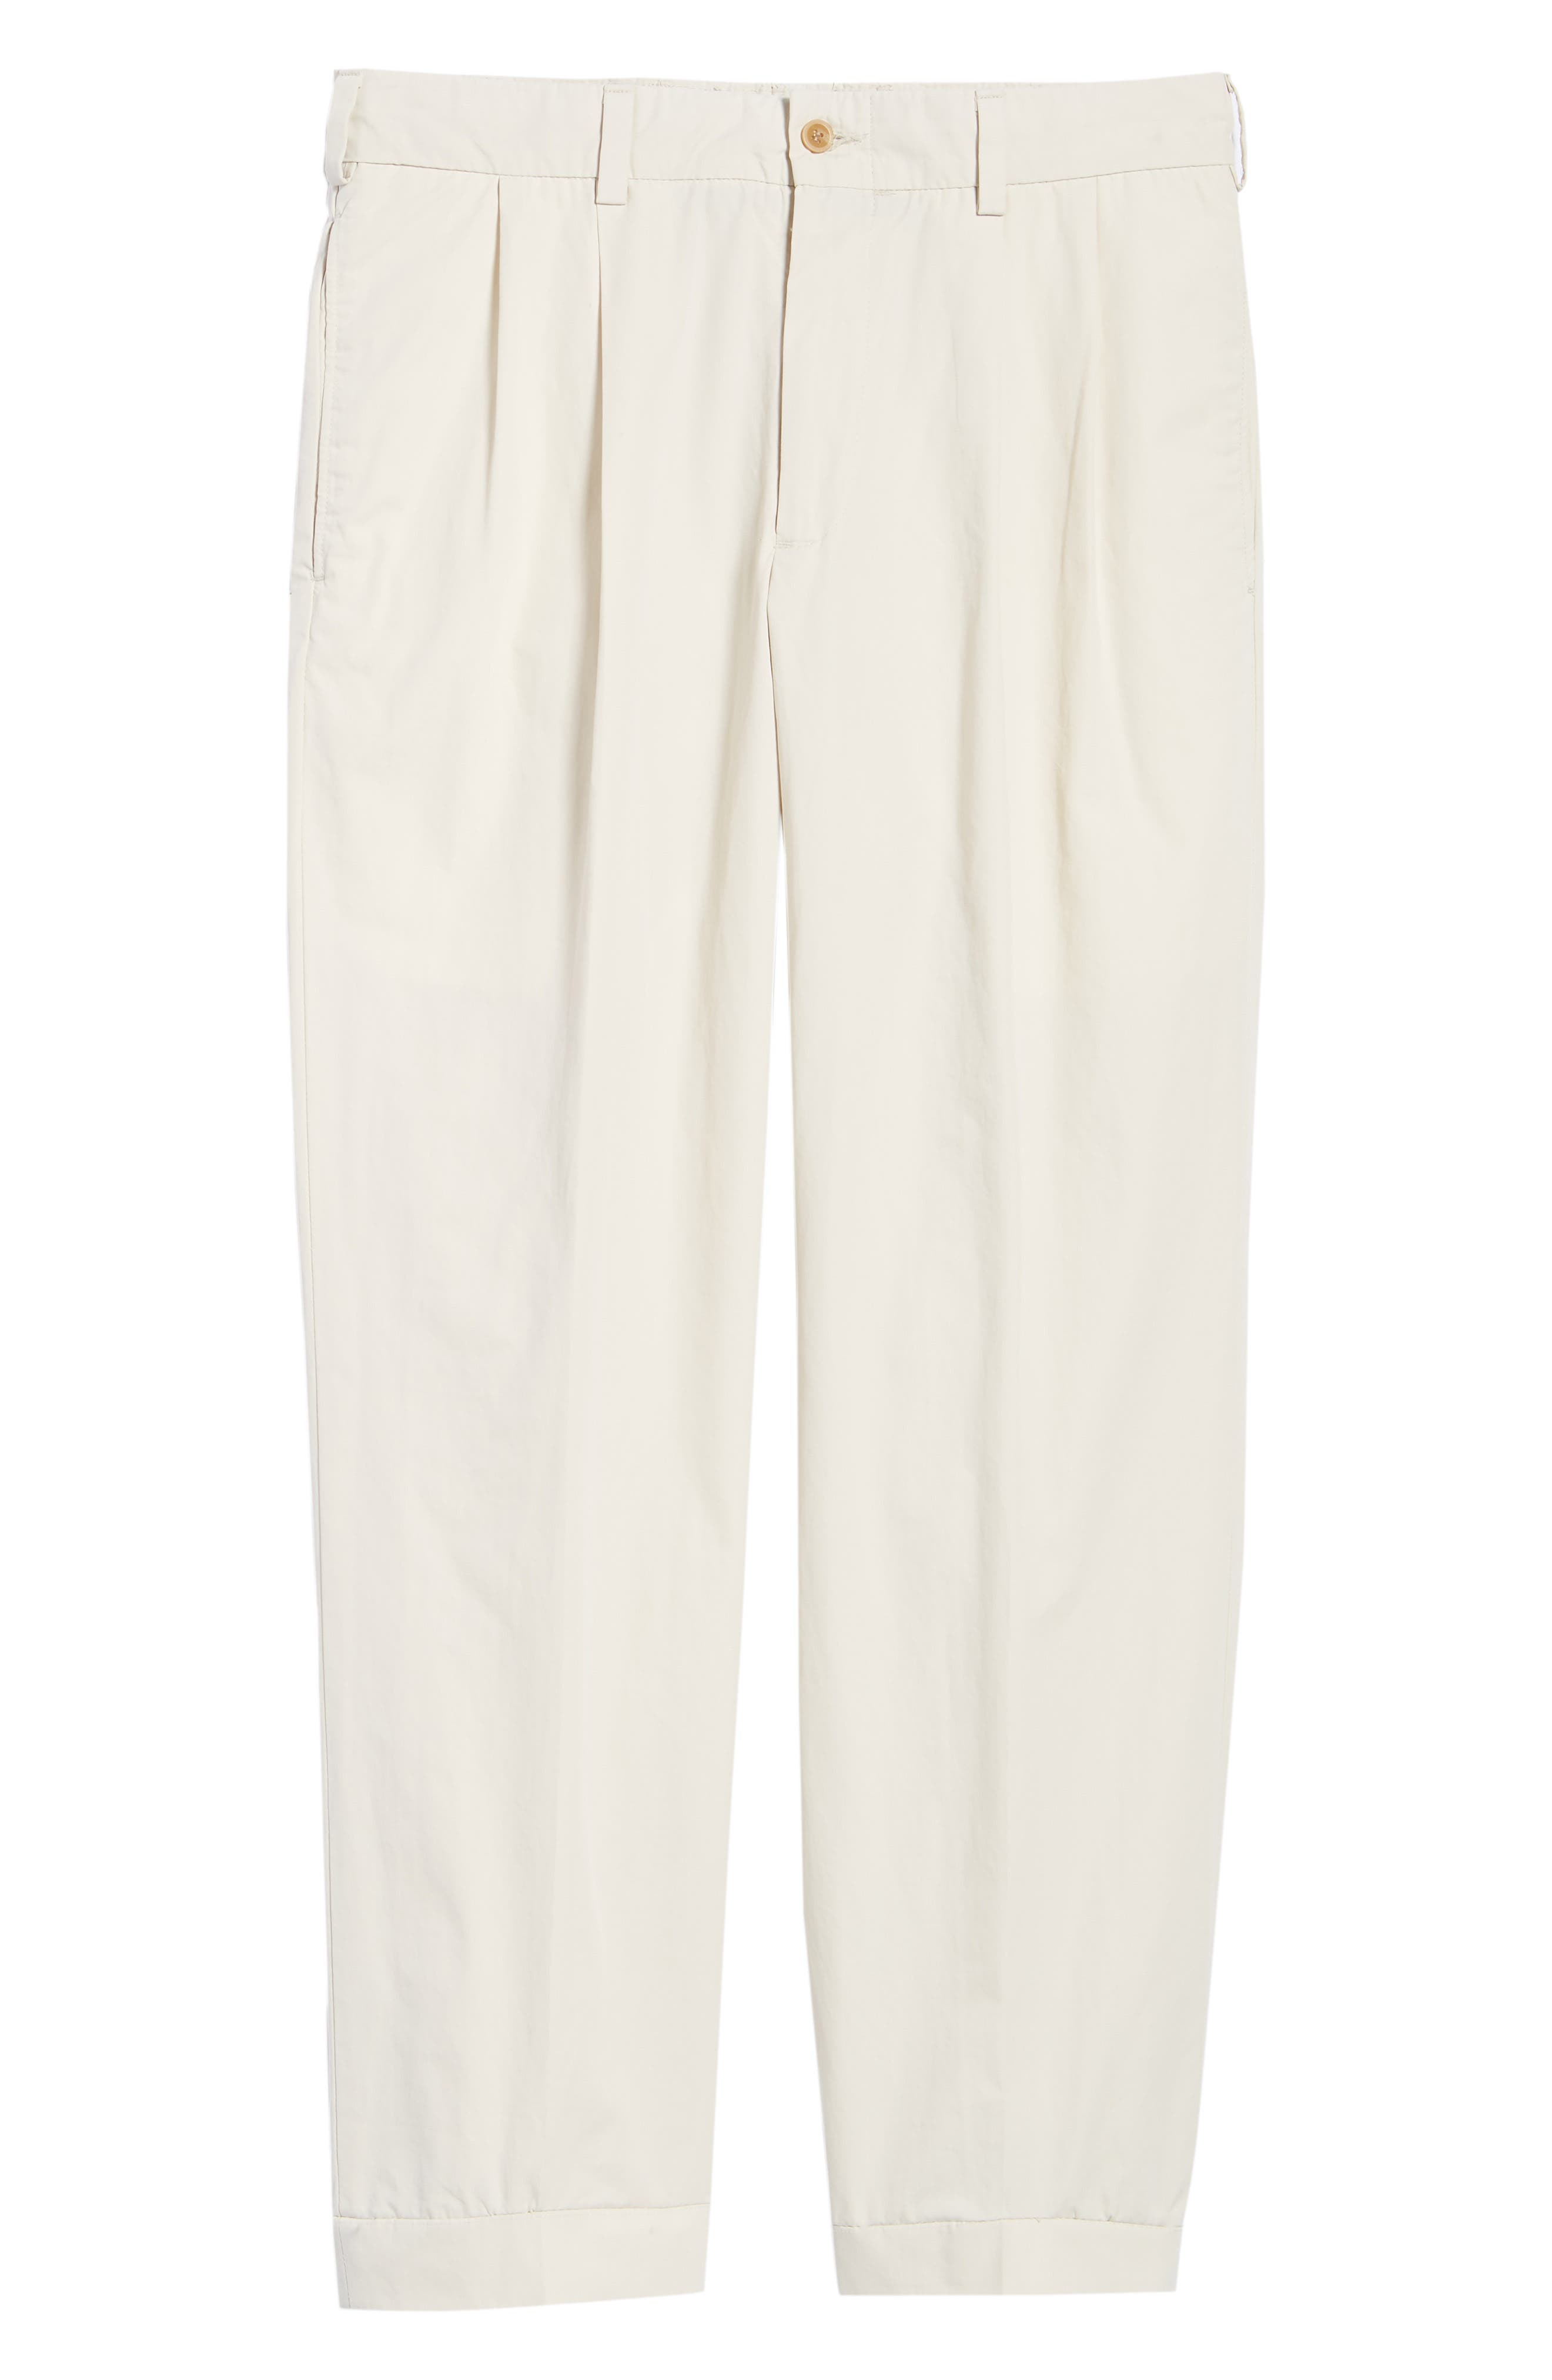 M2 Classic Fit Pleated Tropical Cotton Poplin Pants,                             Alternate thumbnail 6, color,